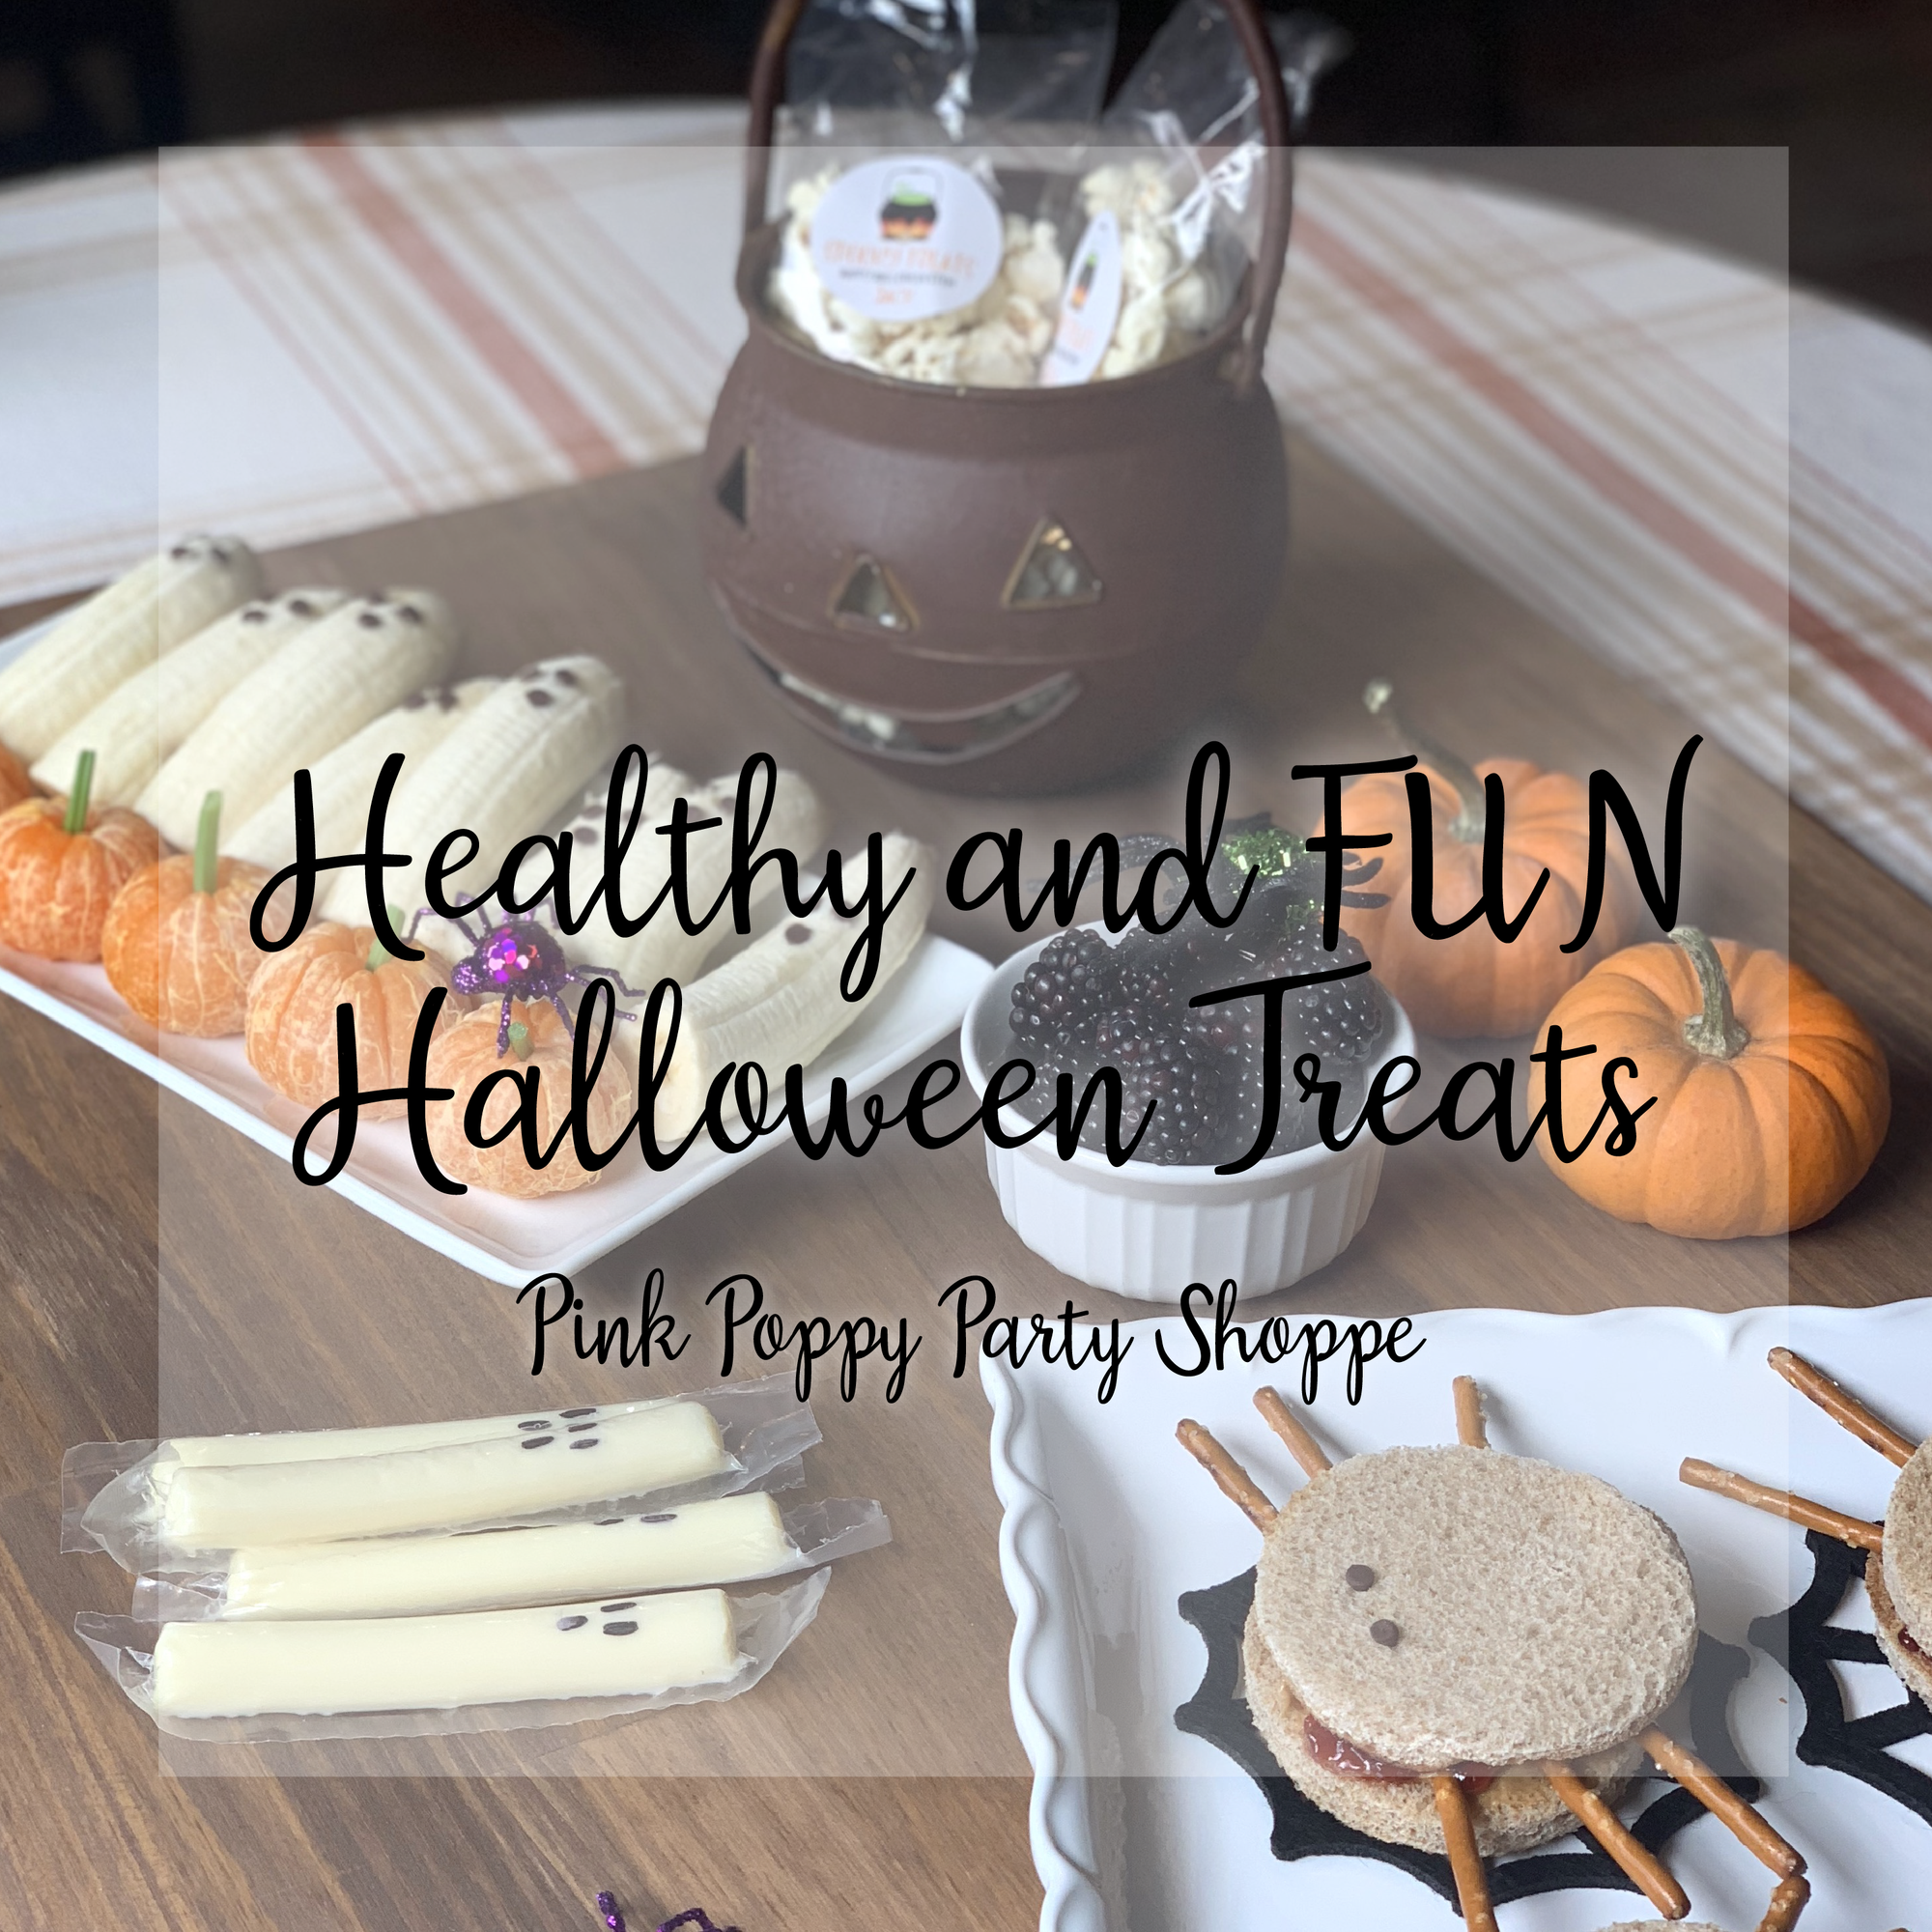 Healthy and Fun Halloween Treat Ideas for Kids | Pink Poppy Party Shoppe